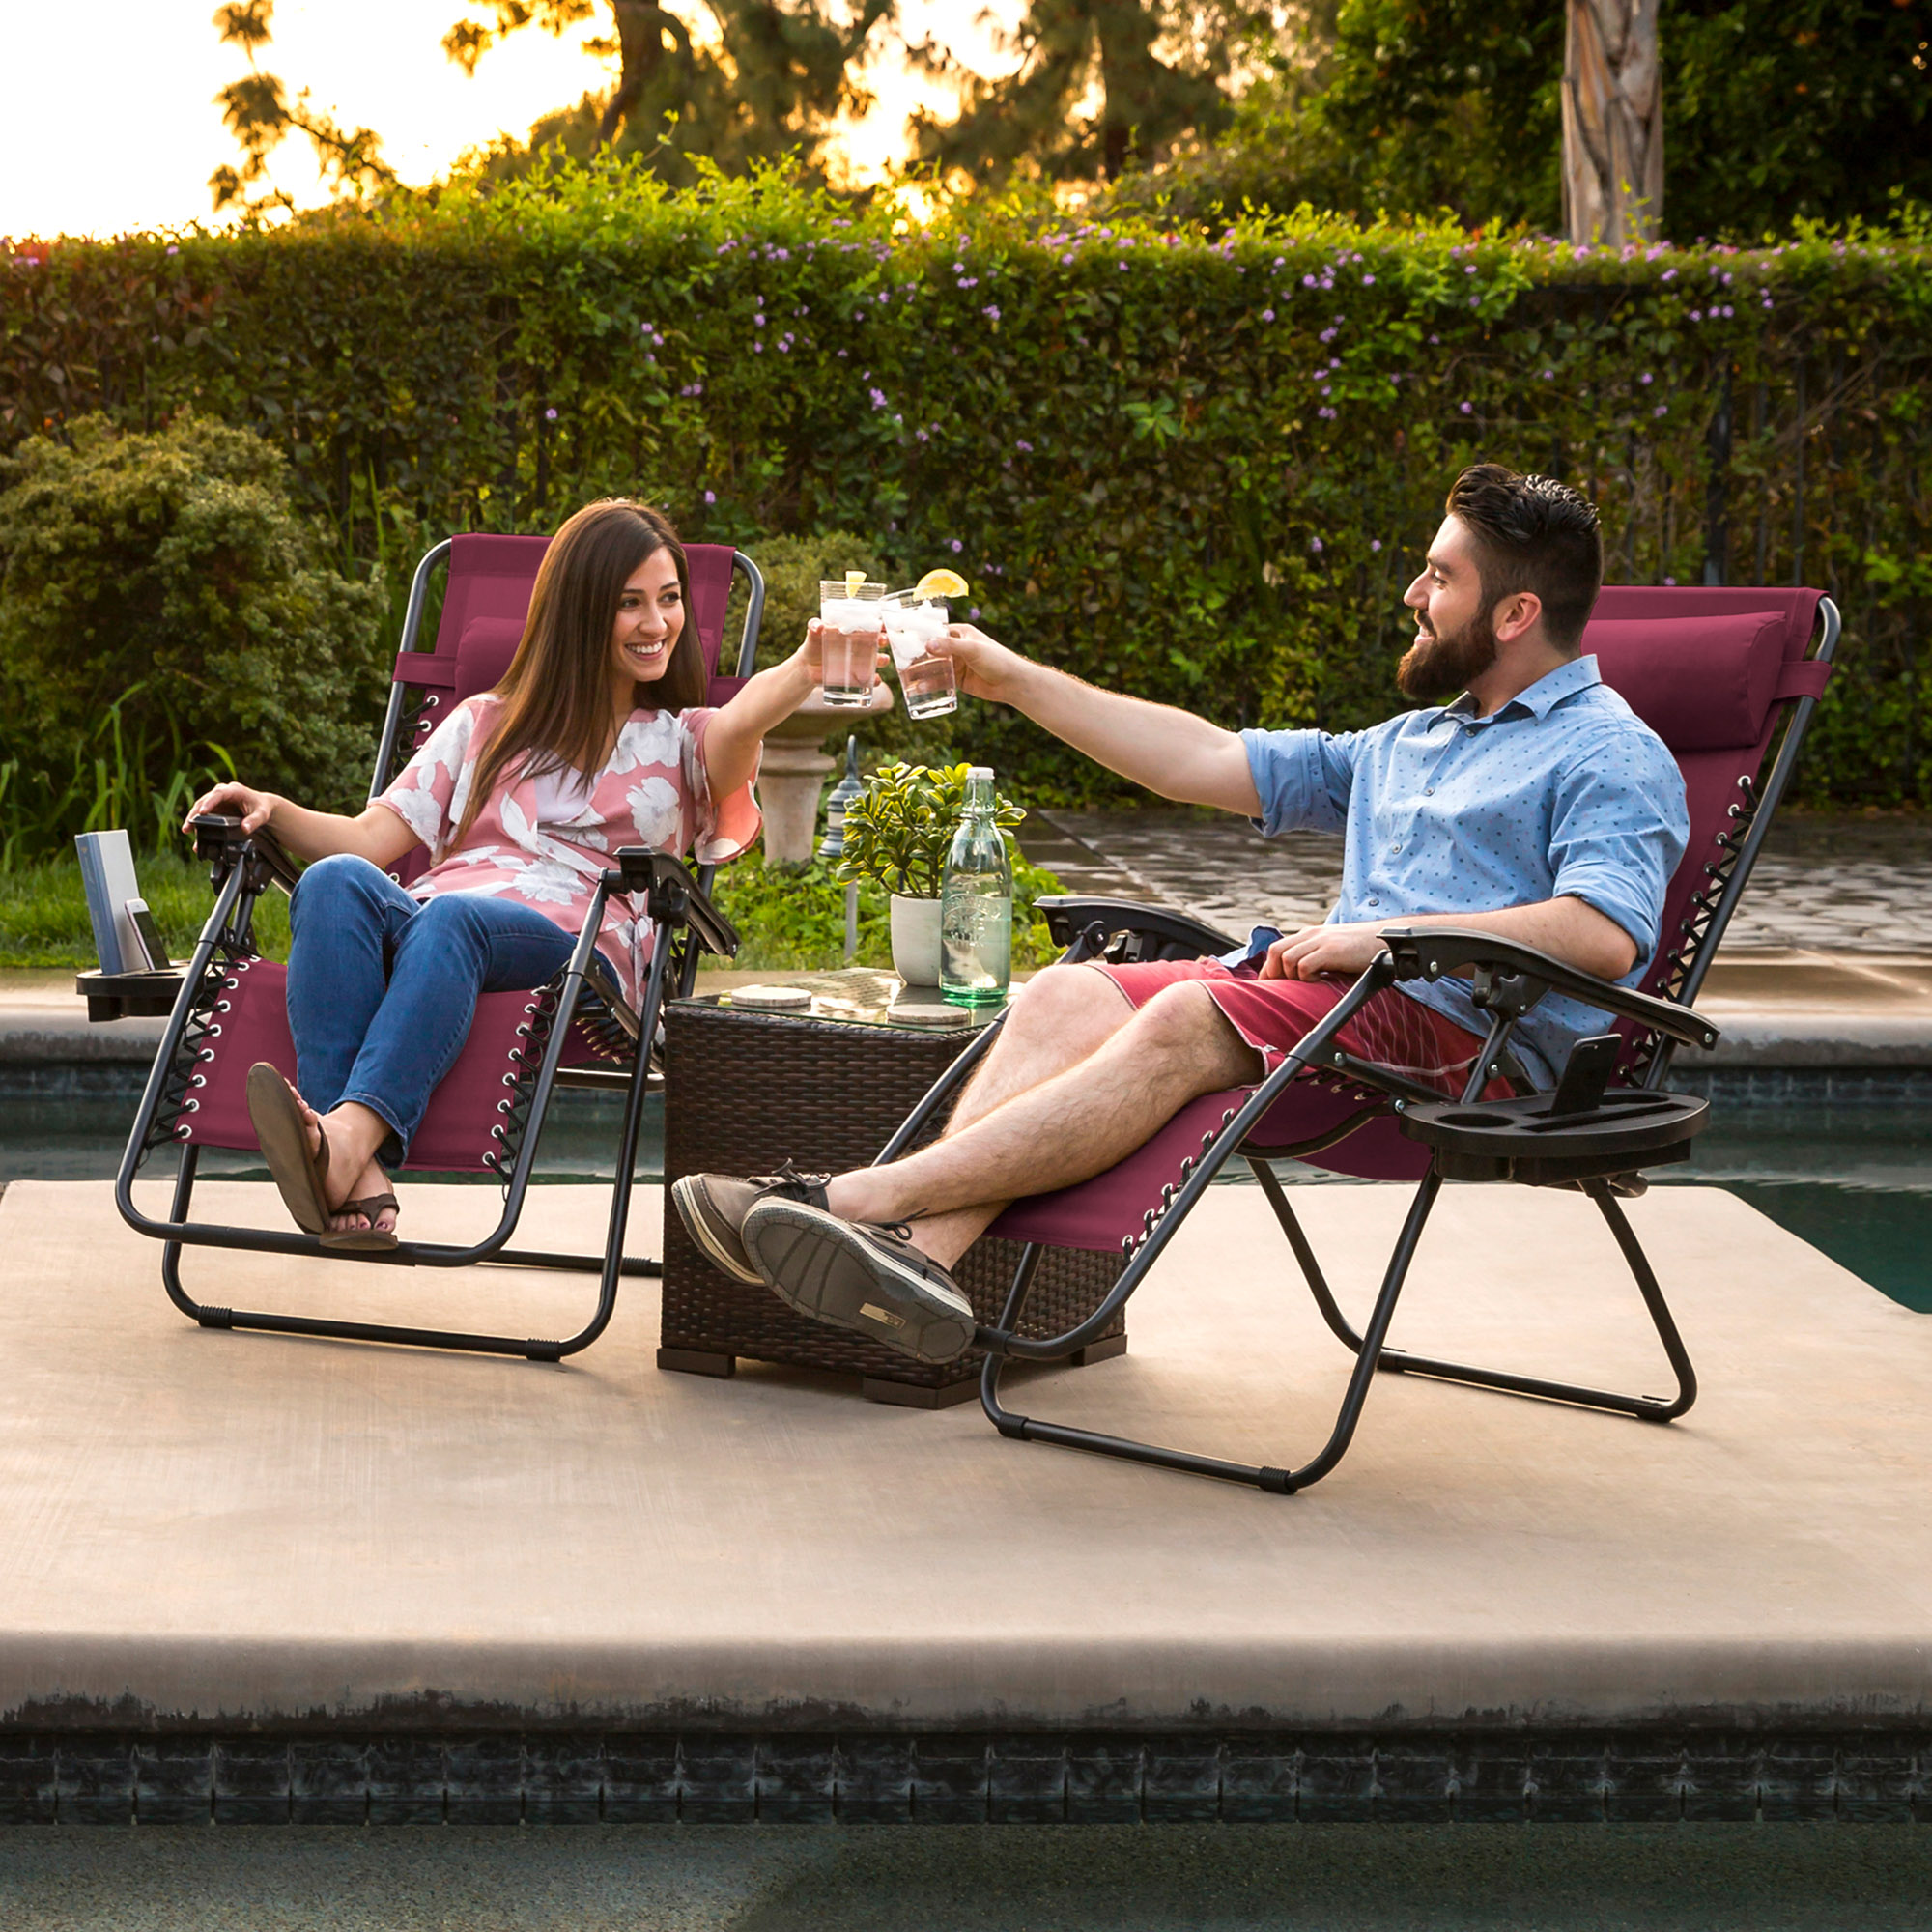 BCP-Set-of-2-Adjustable-Zero-Gravity-Patio-Chair-Recliners-w-Cup-Holders thumbnail 37